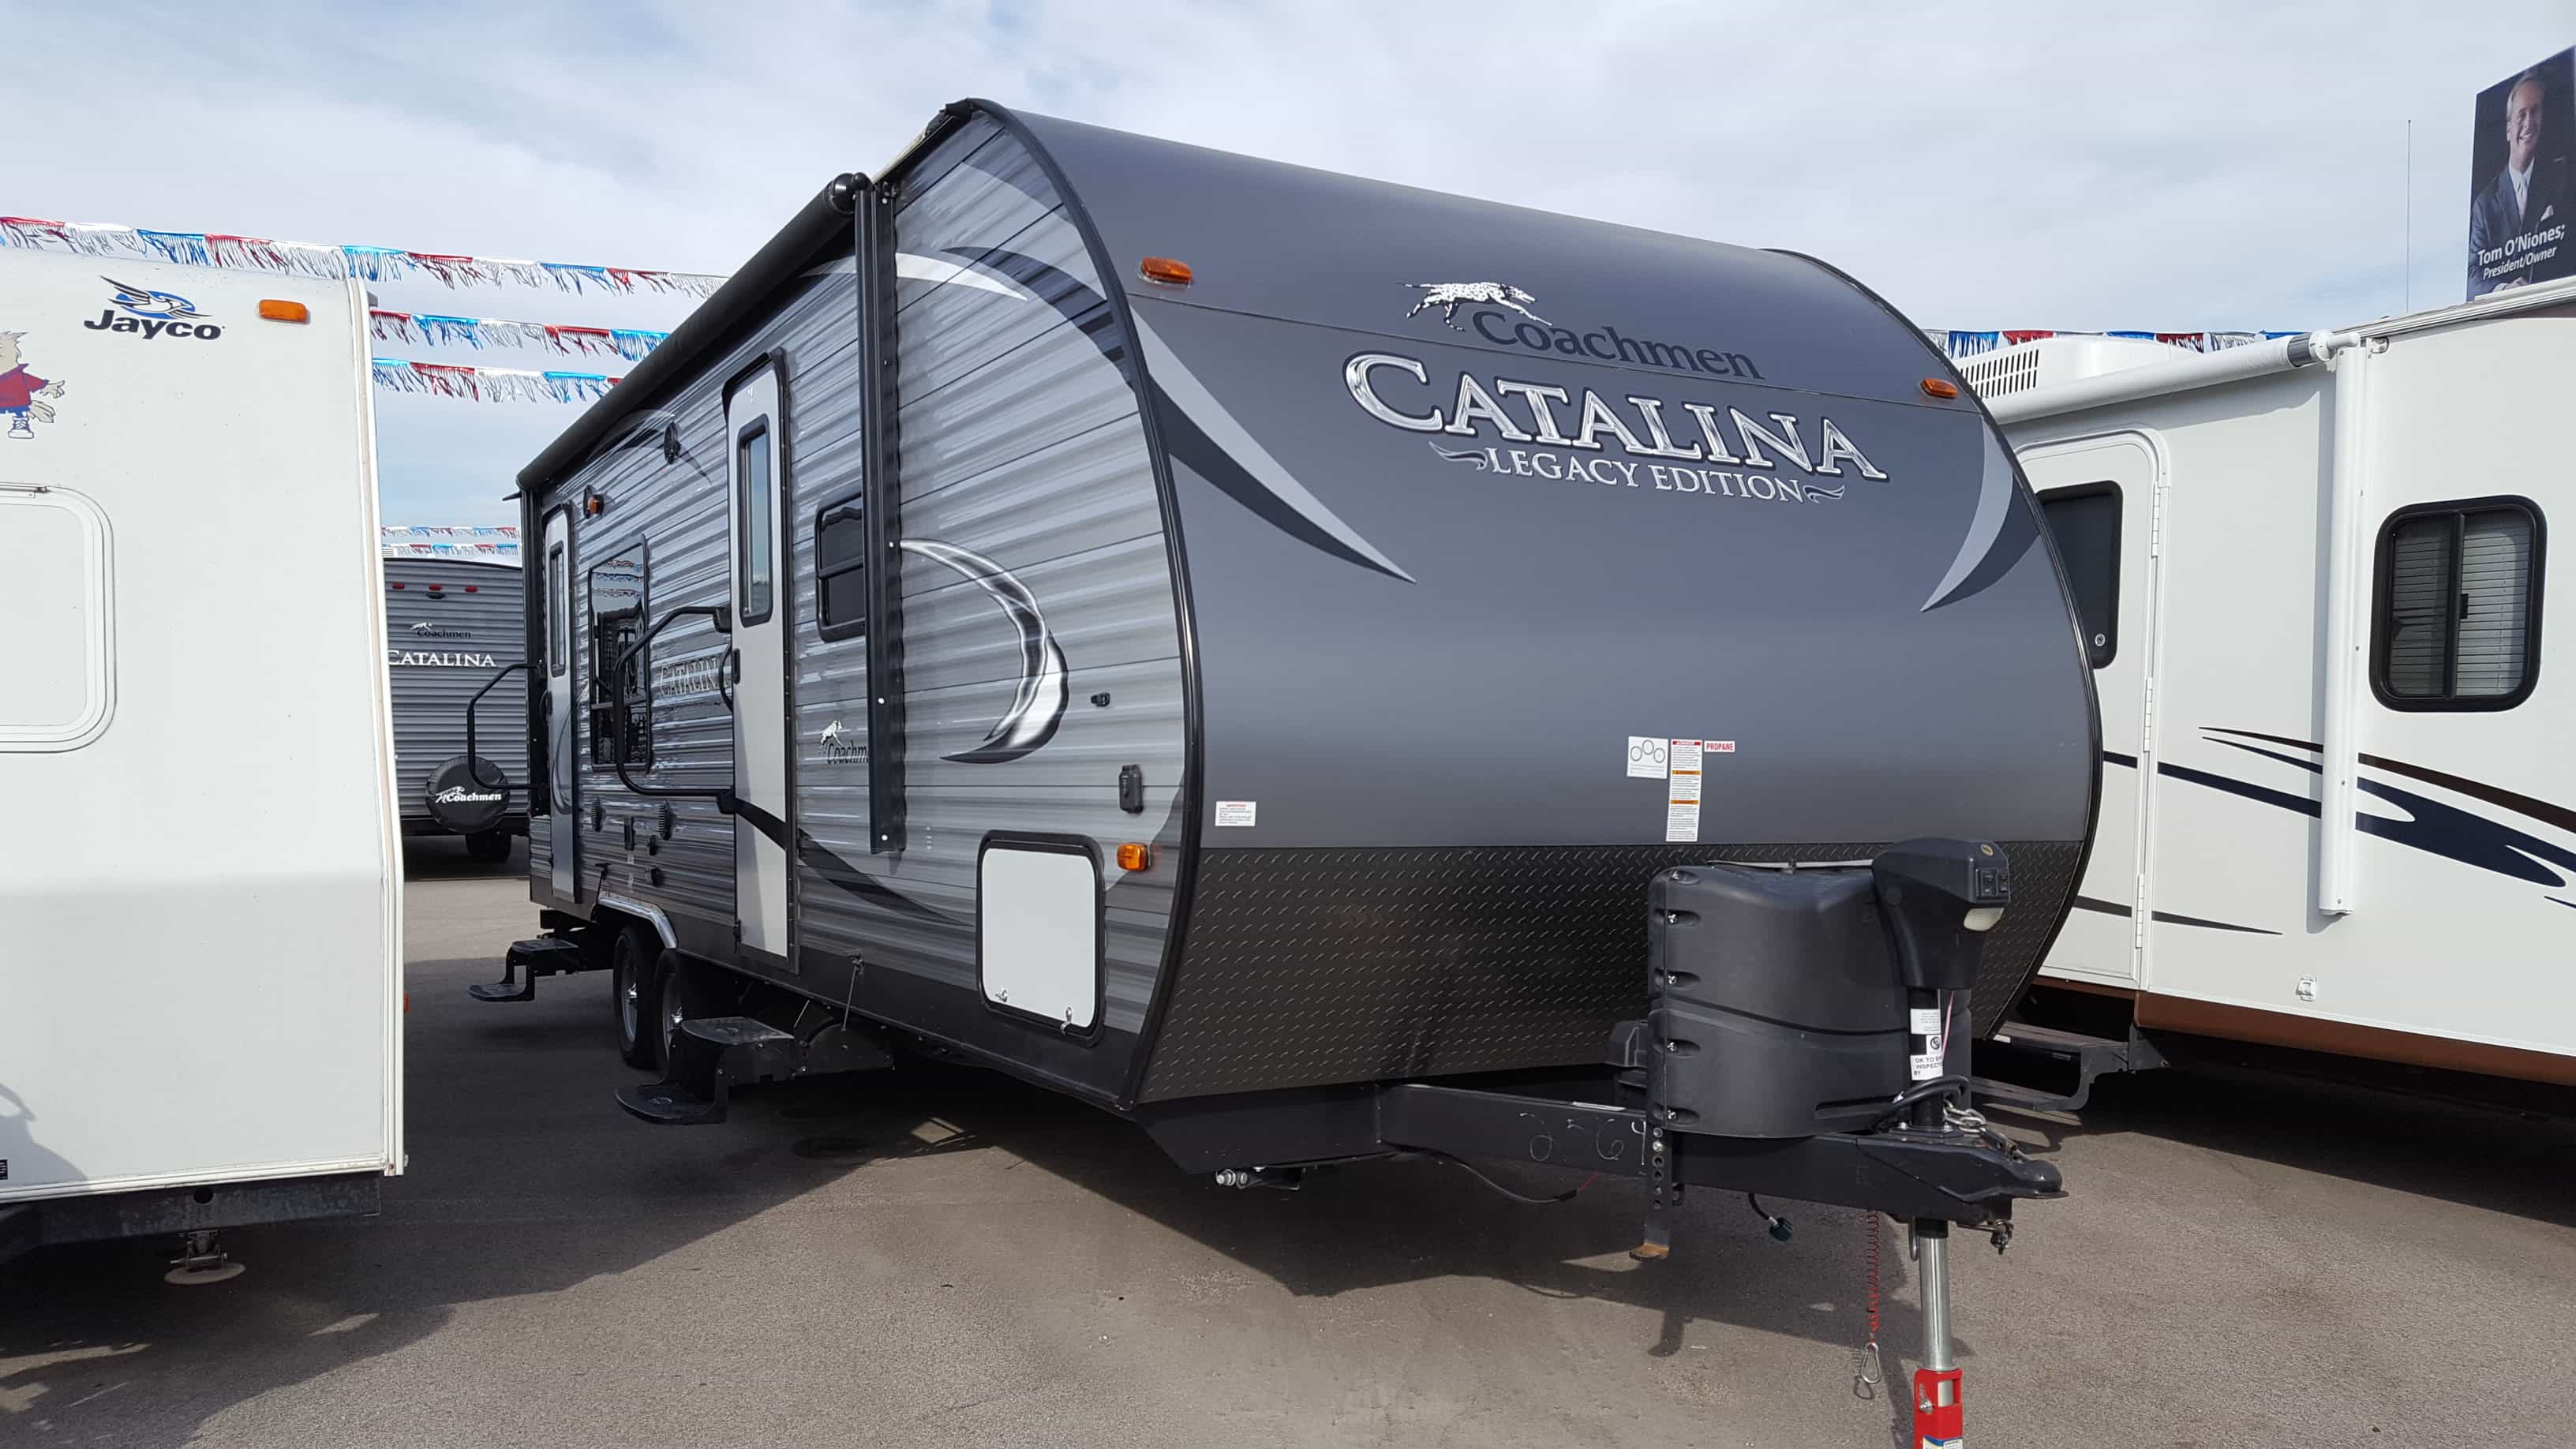 USED 2017 Coachmen CATALINA 253RKS - American RV